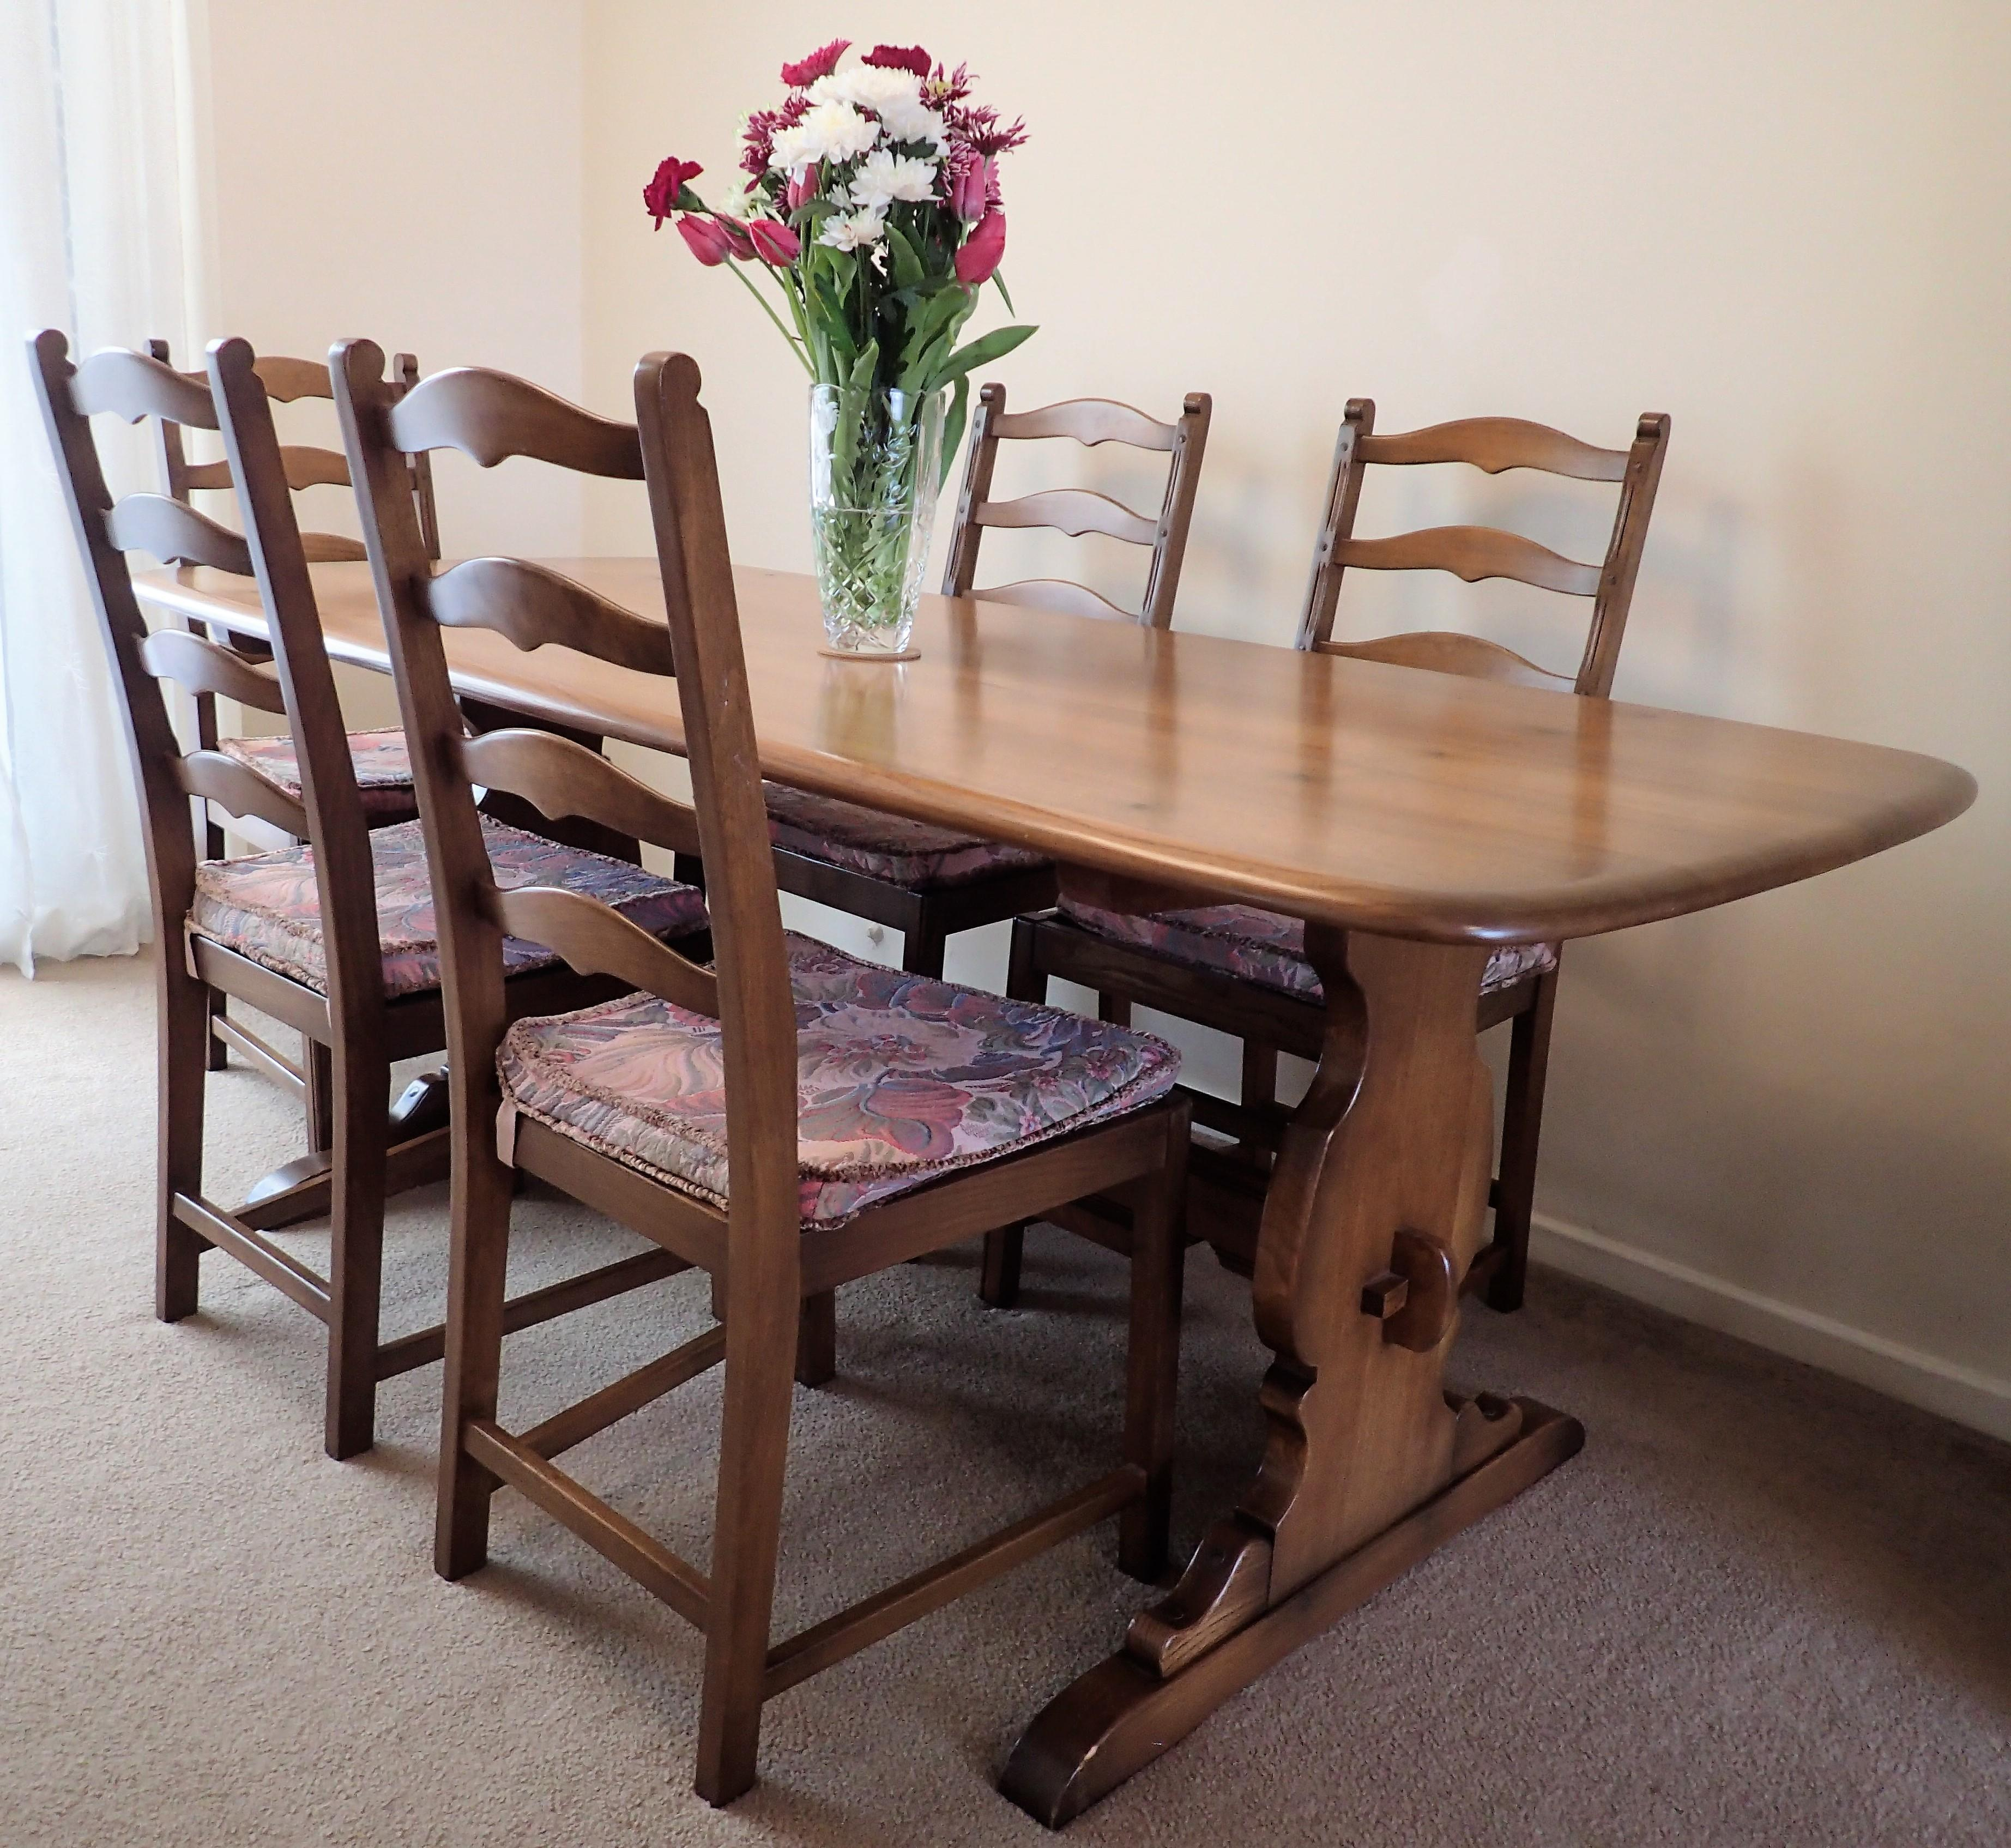 Groovy Ercol Dining Table With 5 Chairs In Guildford Sold Friday Ad Download Free Architecture Designs Salvmadebymaigaardcom